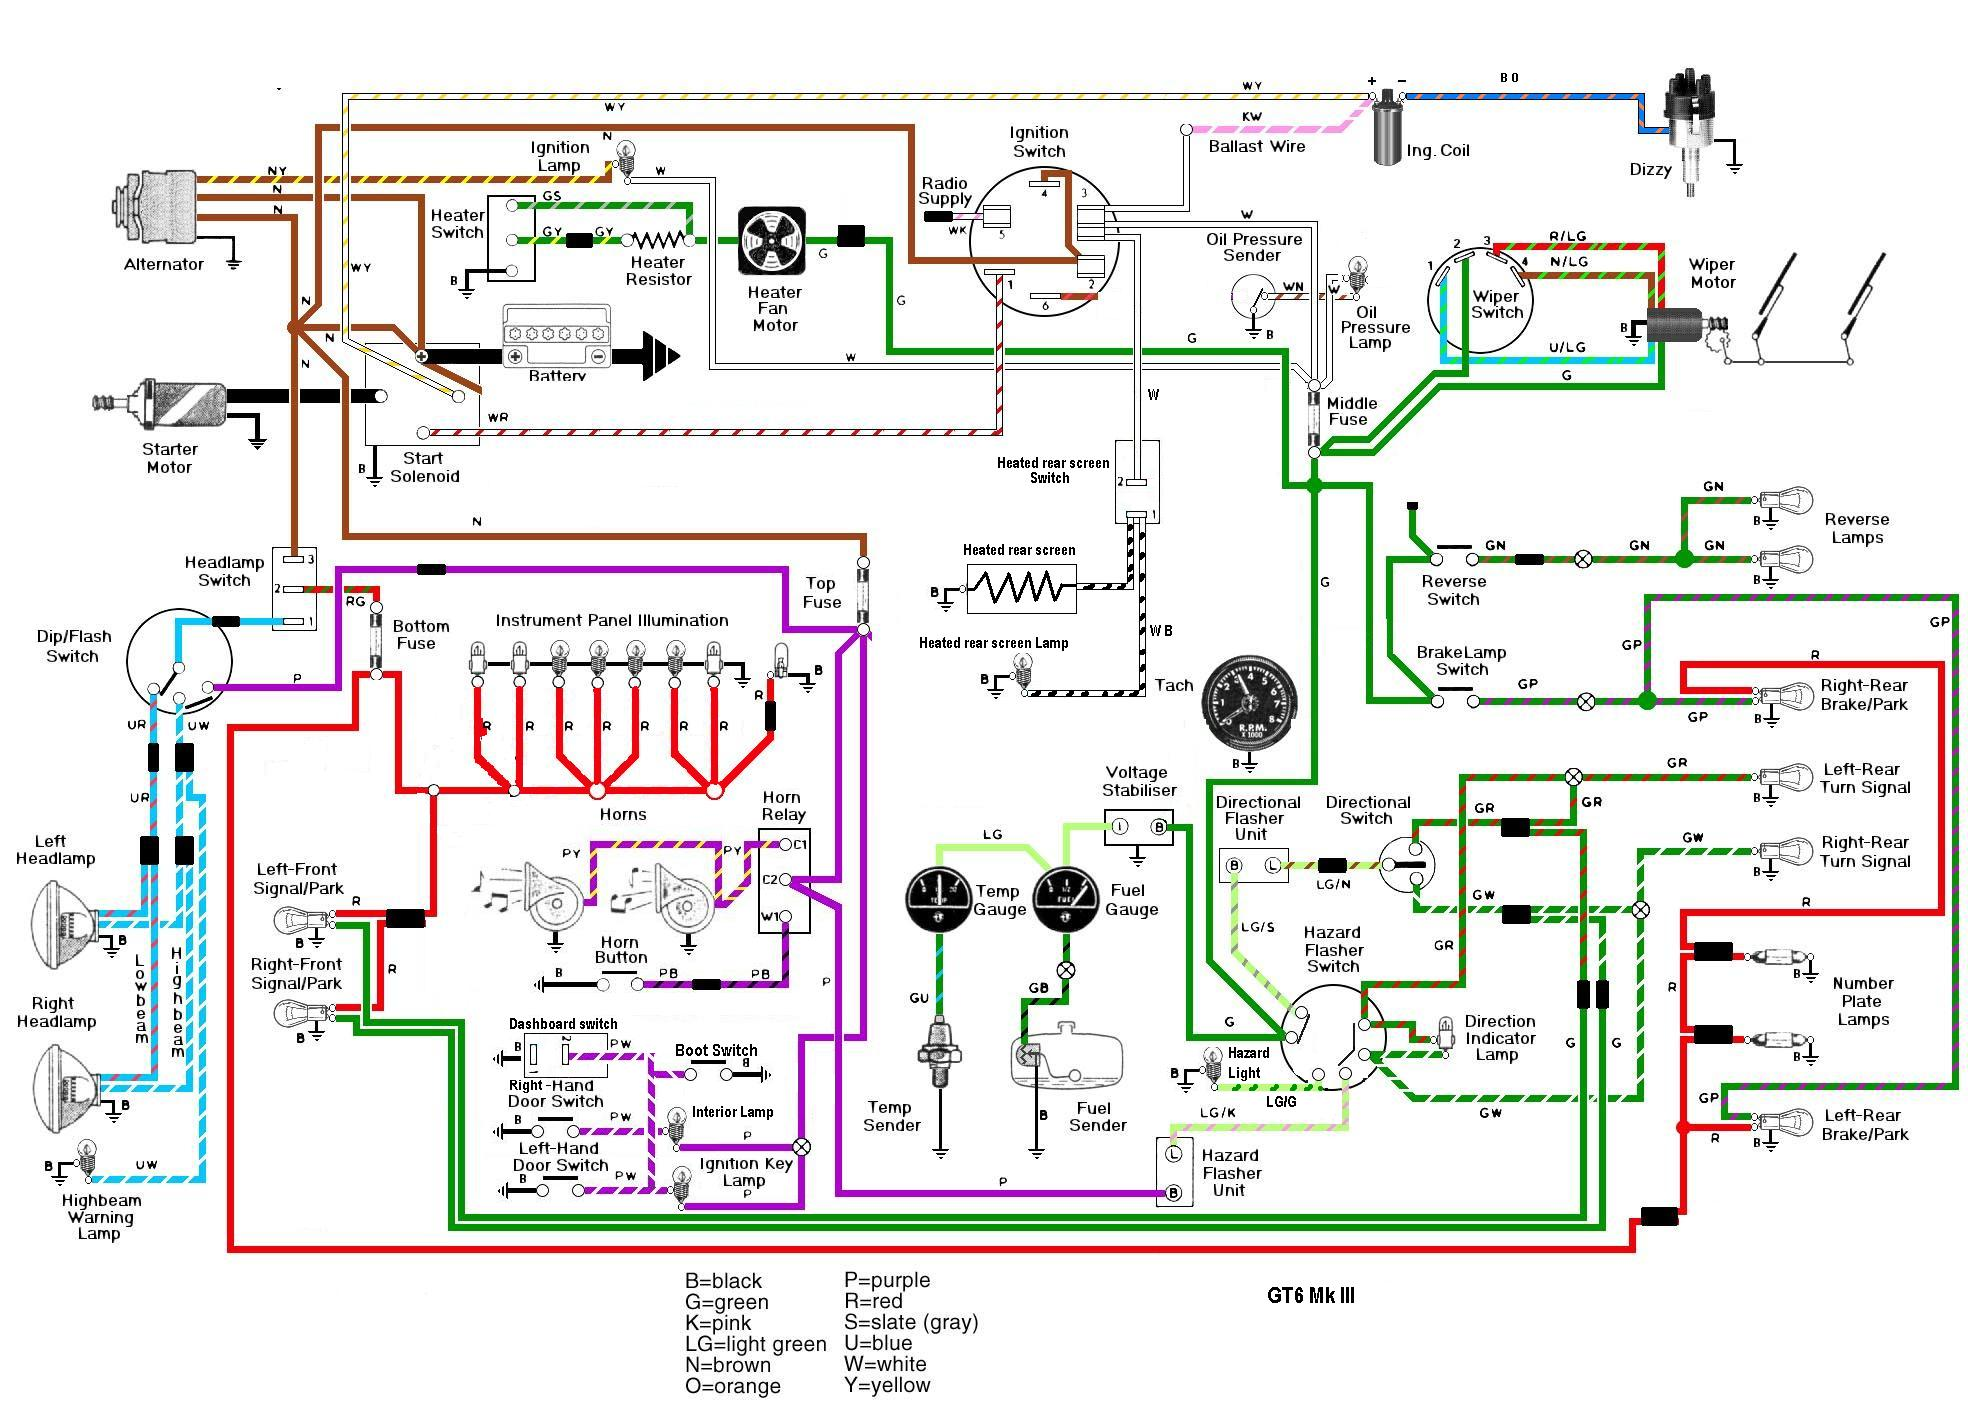 tr 8 wiring diagram simple wiring diagram tr 8 wiring diagram wiring library light switch wiring diagram tr 8 wiring diagram